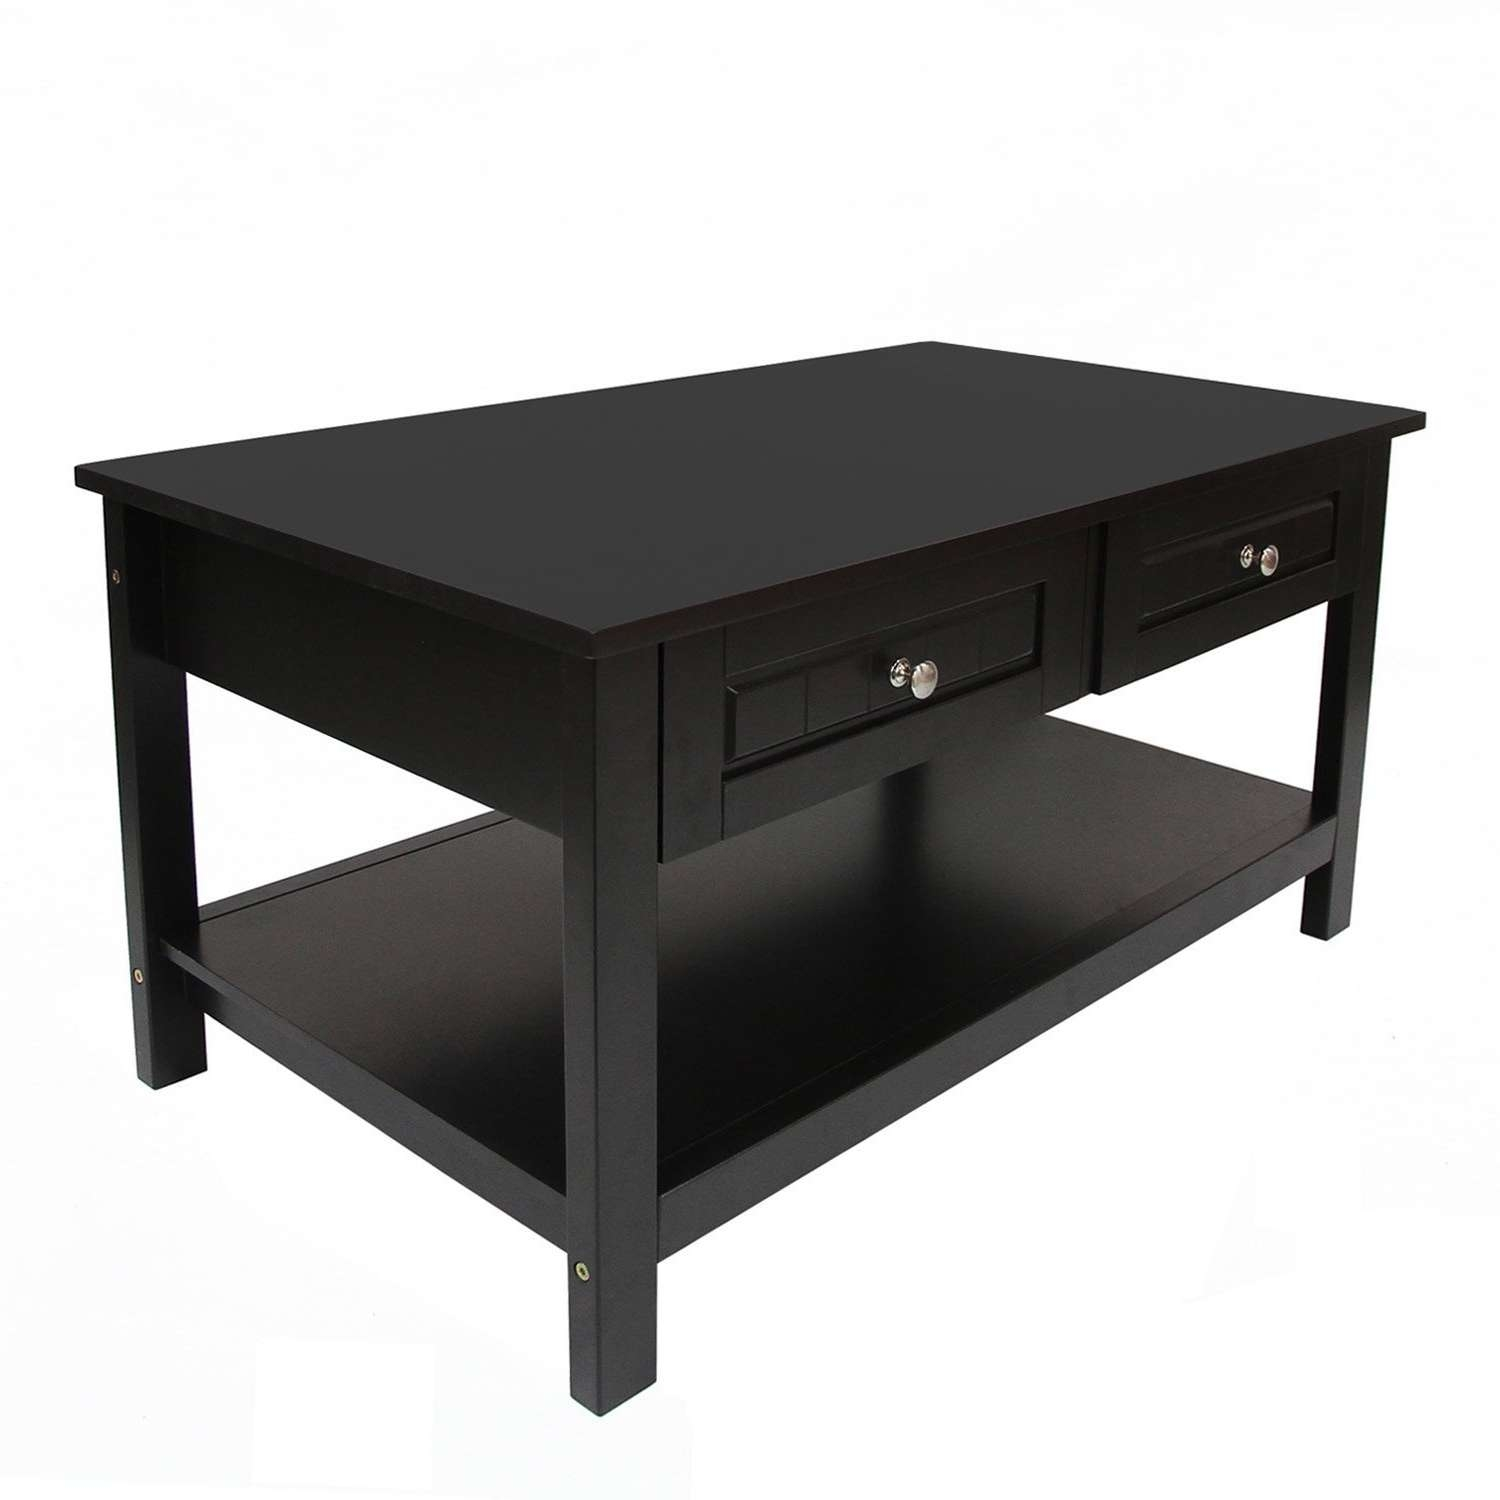 Coffee Table : Magnificent Black Coffee Table Large Square Coffee In Fashionable Black Coffee Tables With Storage (View 2 of 20)